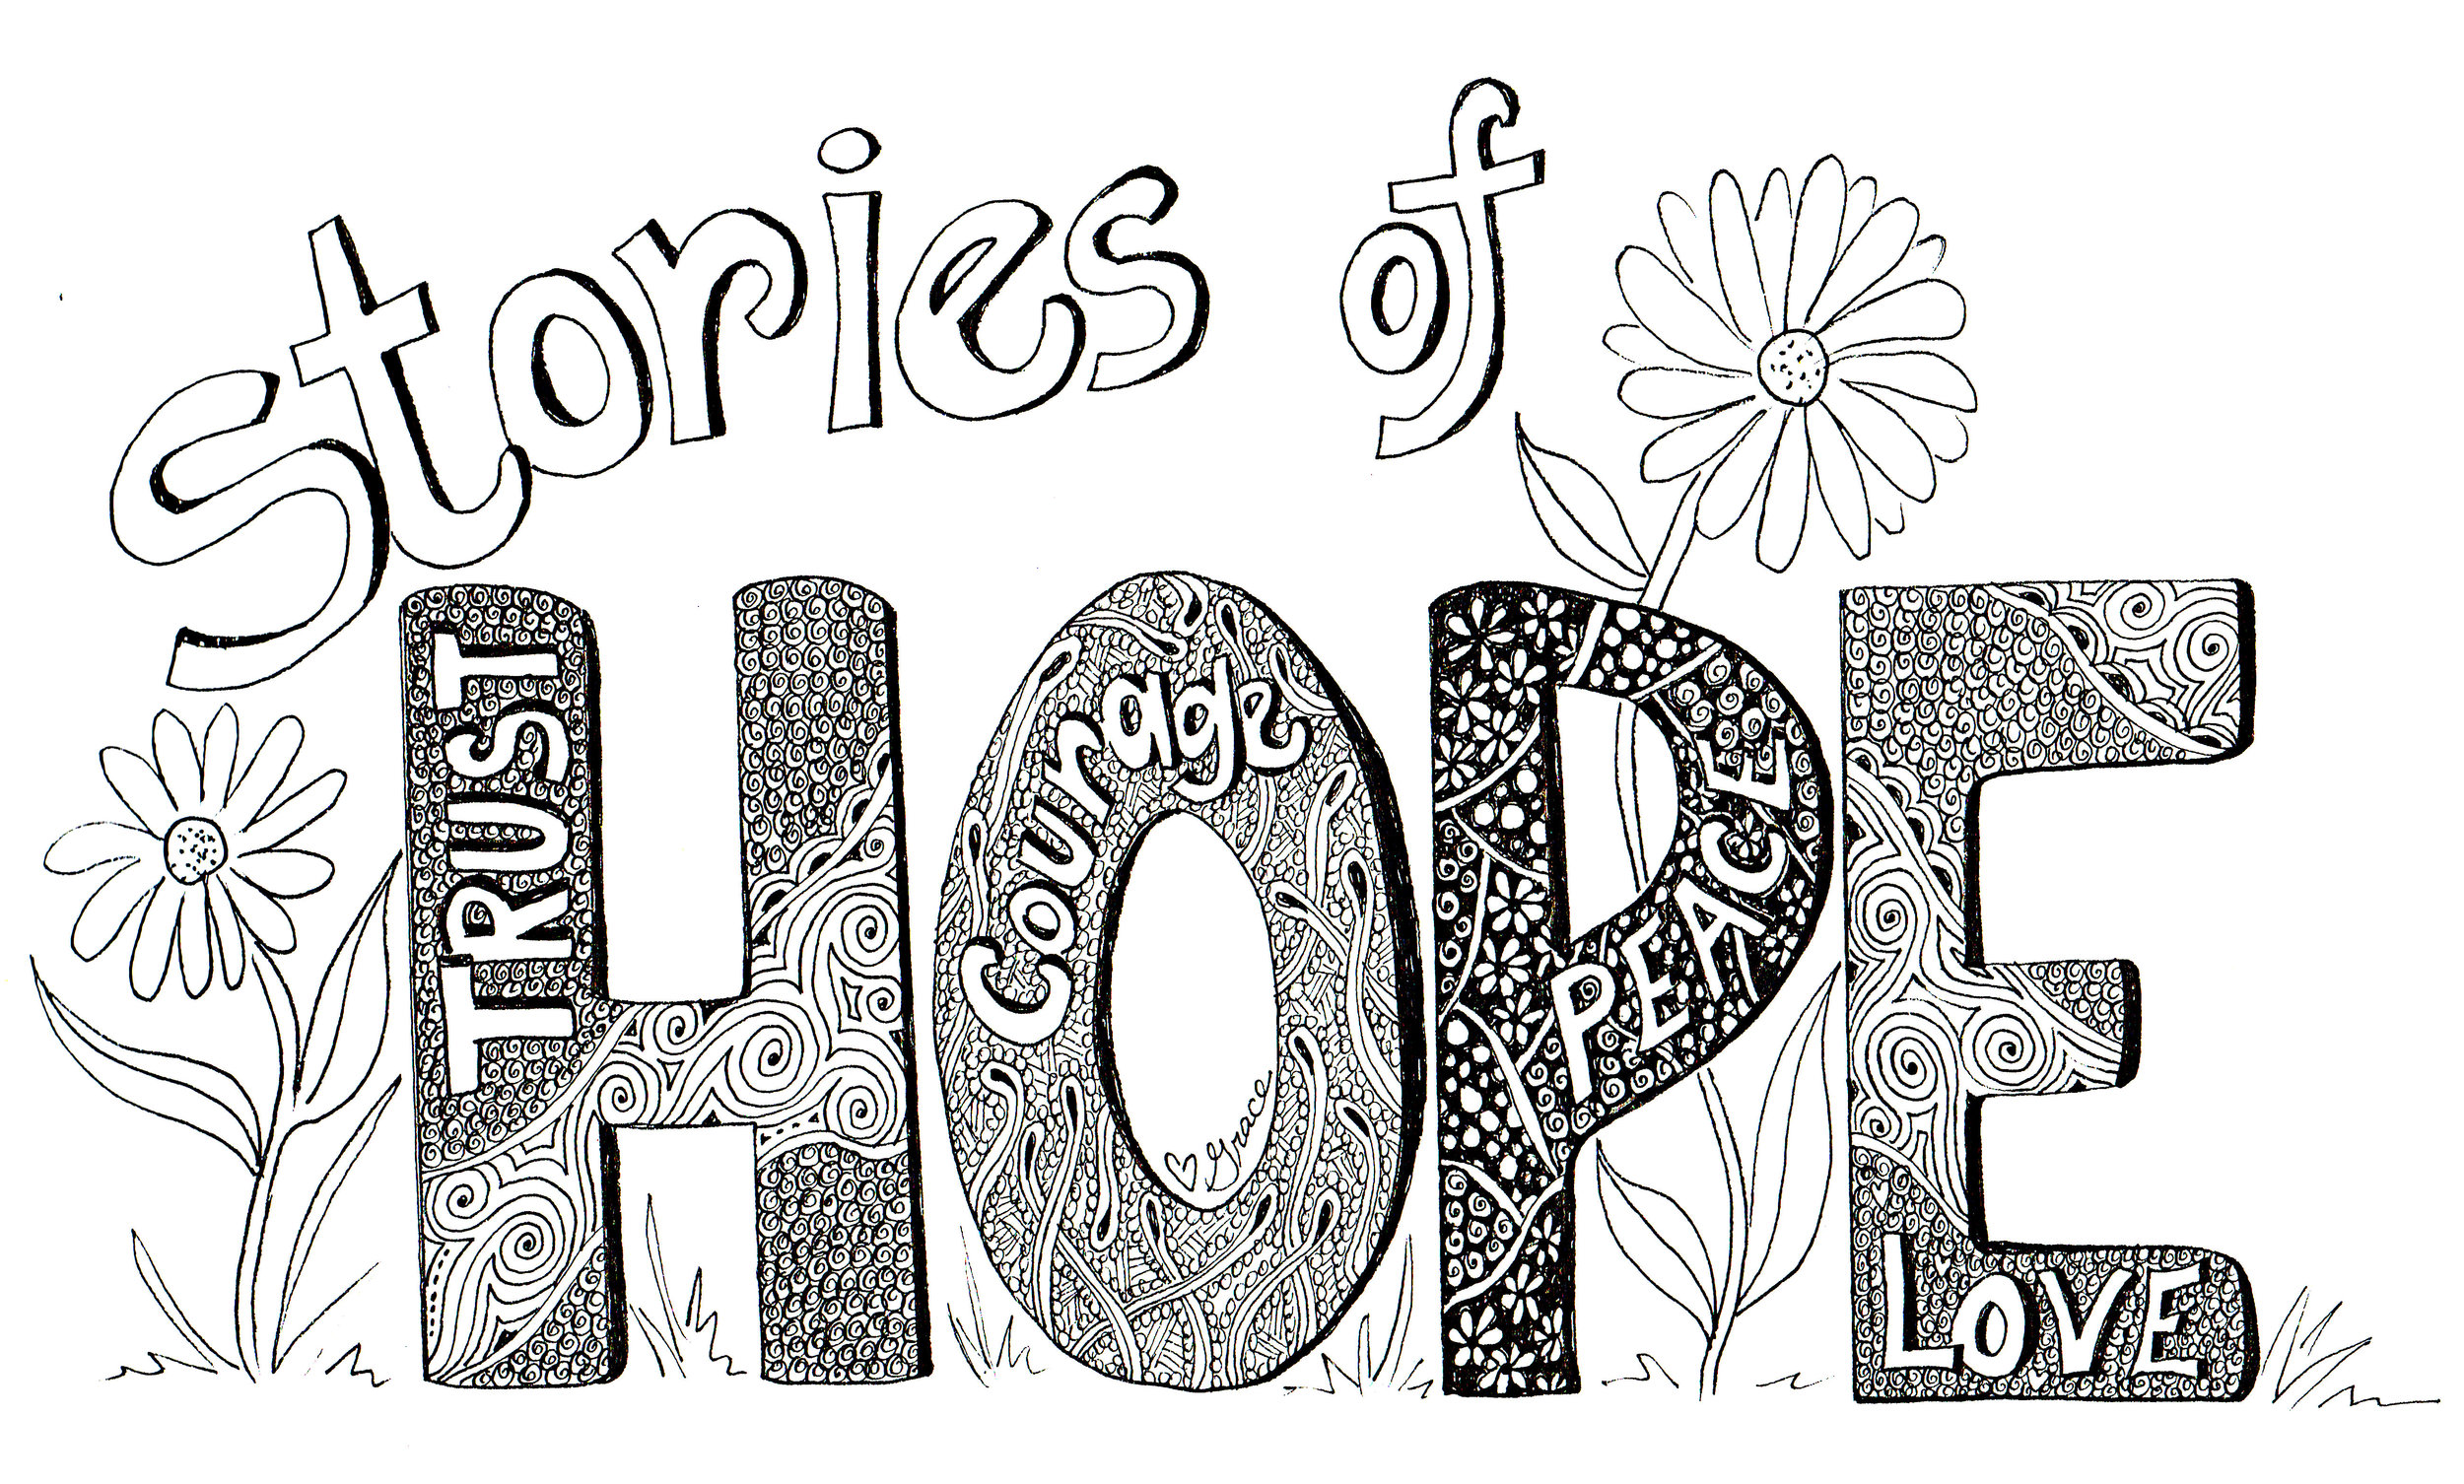 Stories of Hope - August 19, 2018 Grace WulffRomans 5:1-8